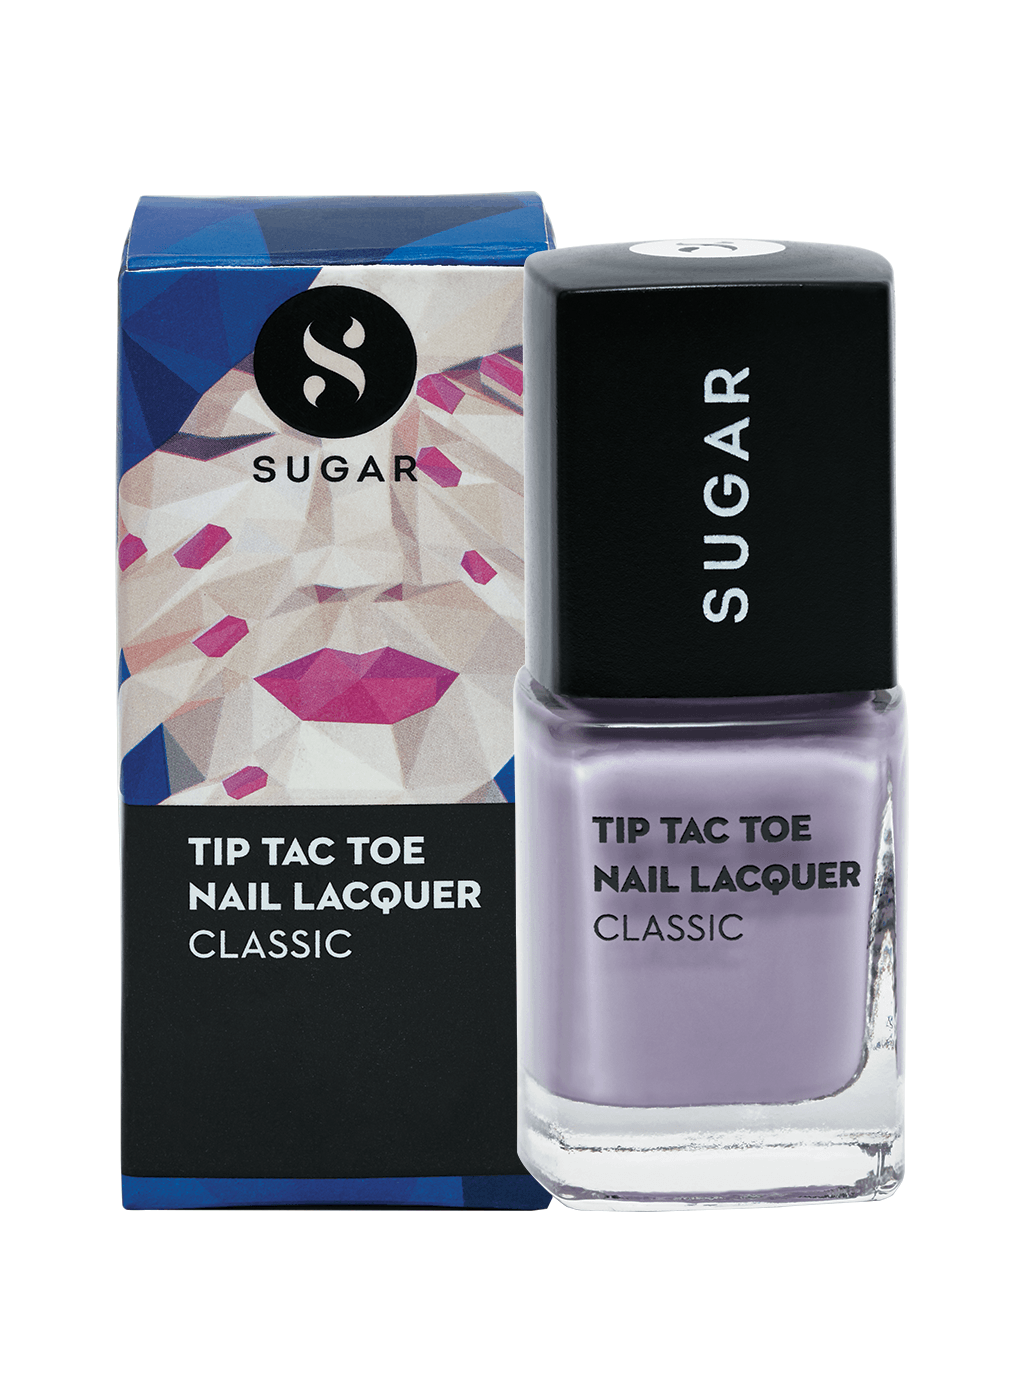 Tip Tac Toe Nail Lacquer - 064 Pop The Purple (Pastel Lavender)